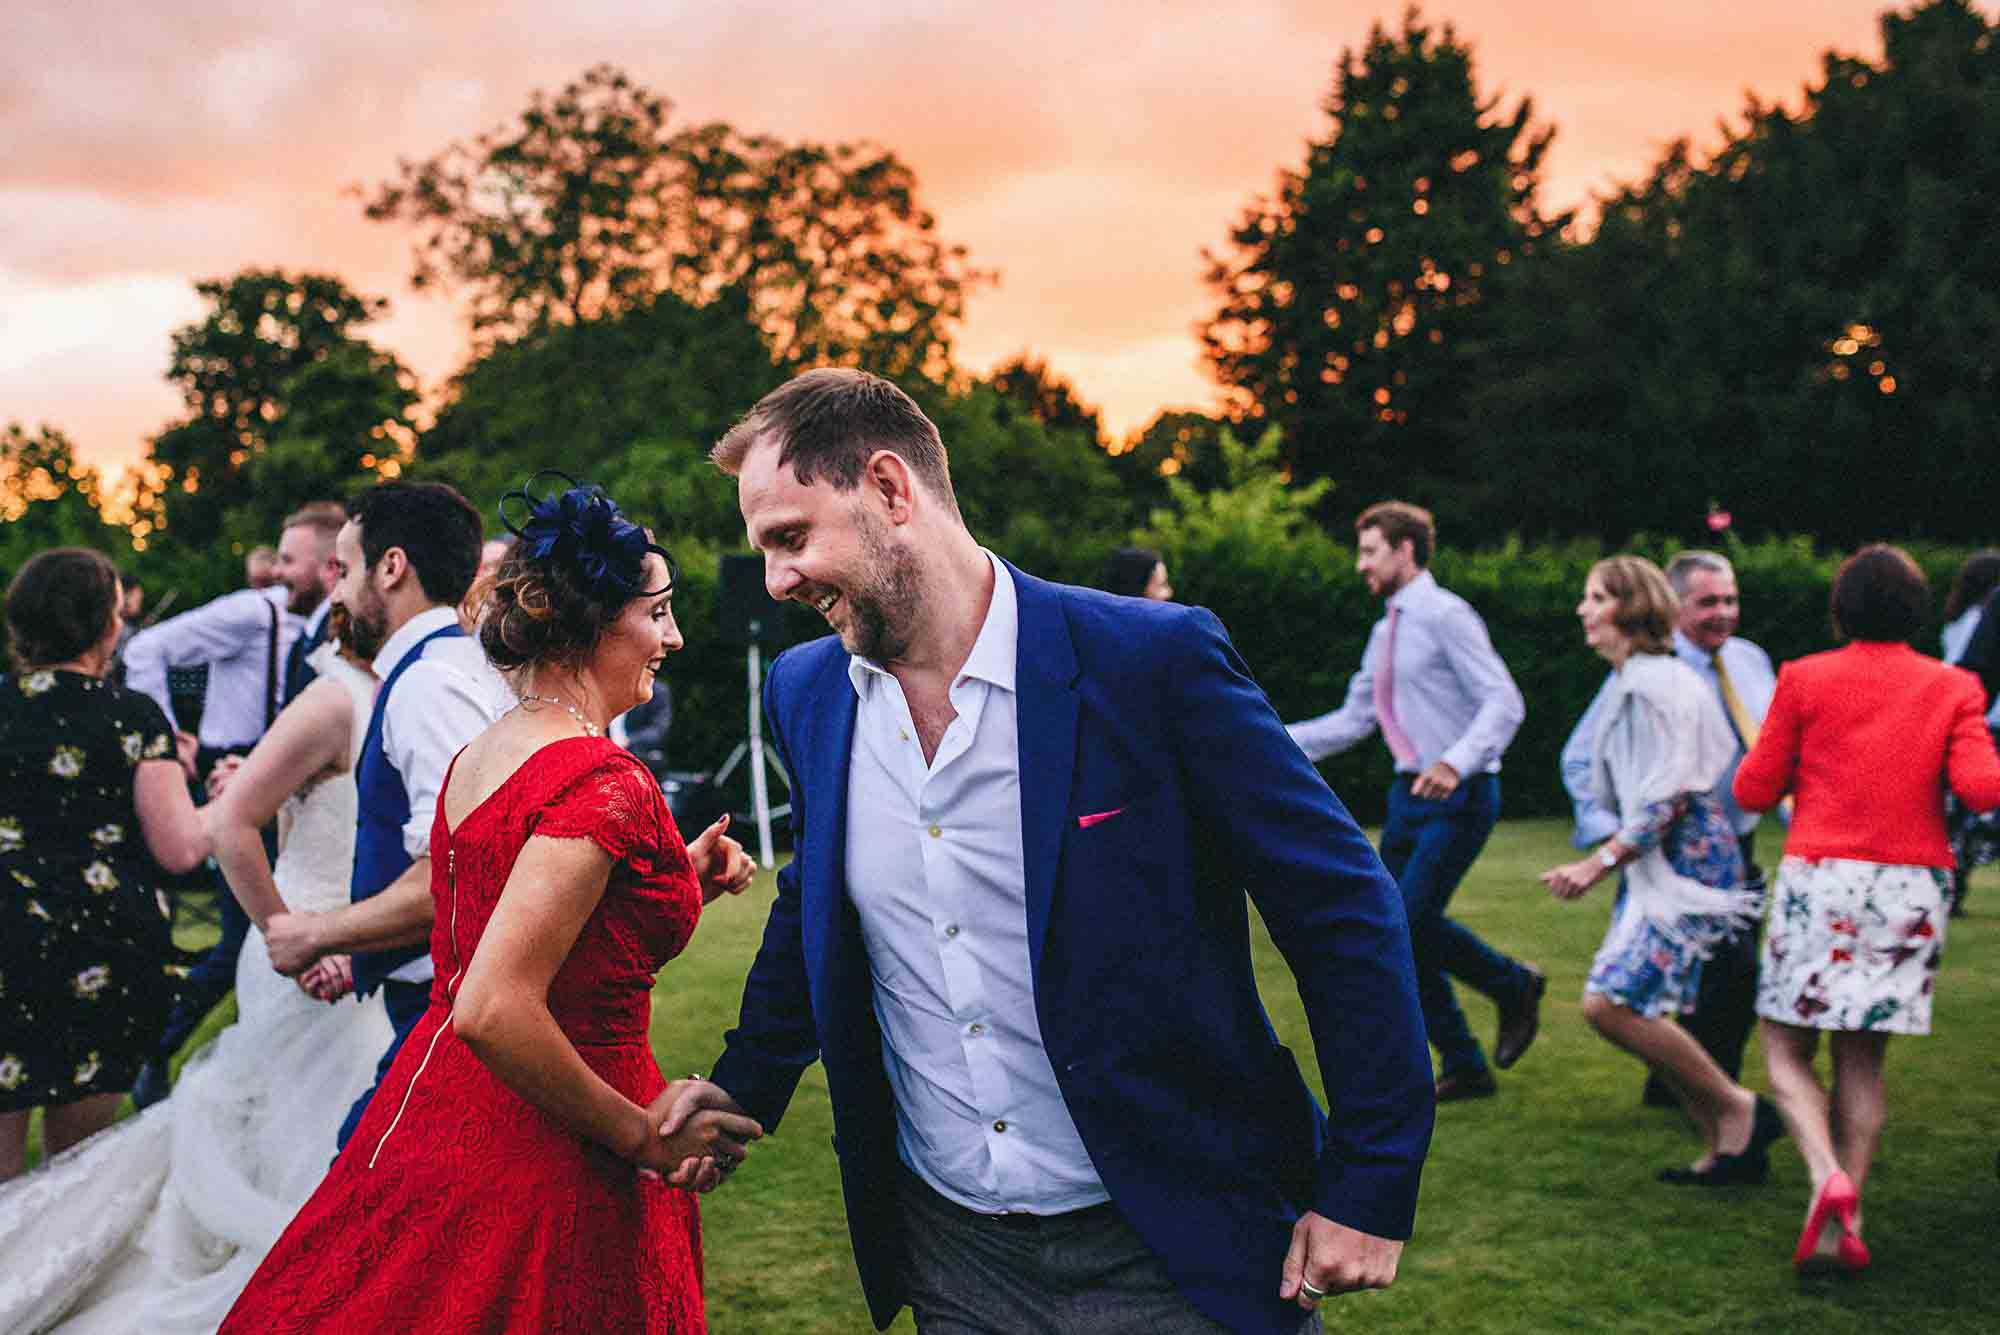 Narborough Hall Gardens wedding photography 47 Completed